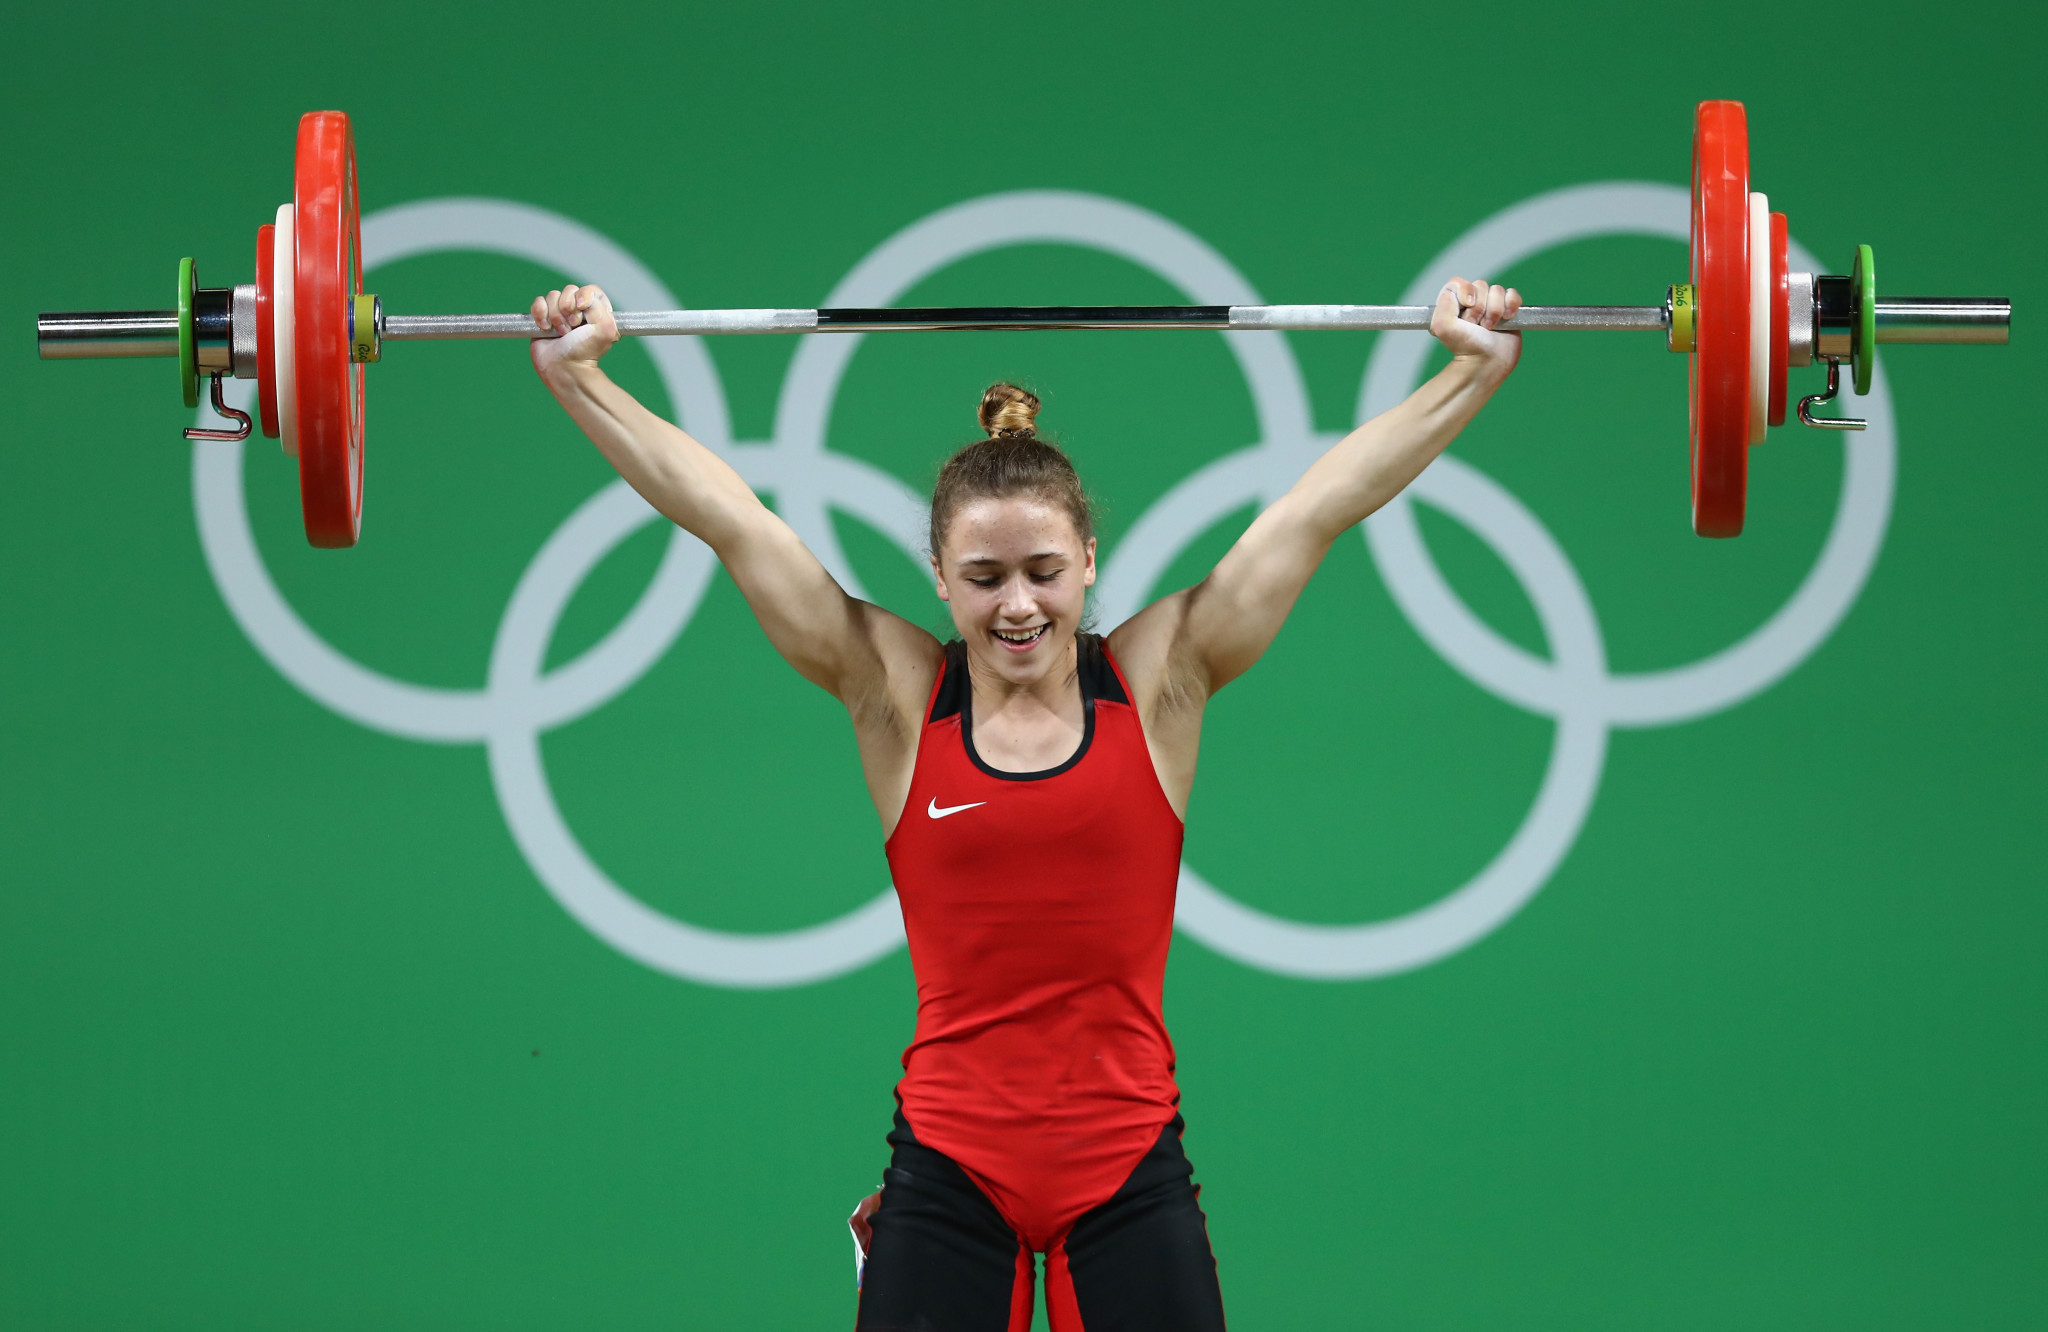 Latvian weightlifting star Koha announces retirement aged 22